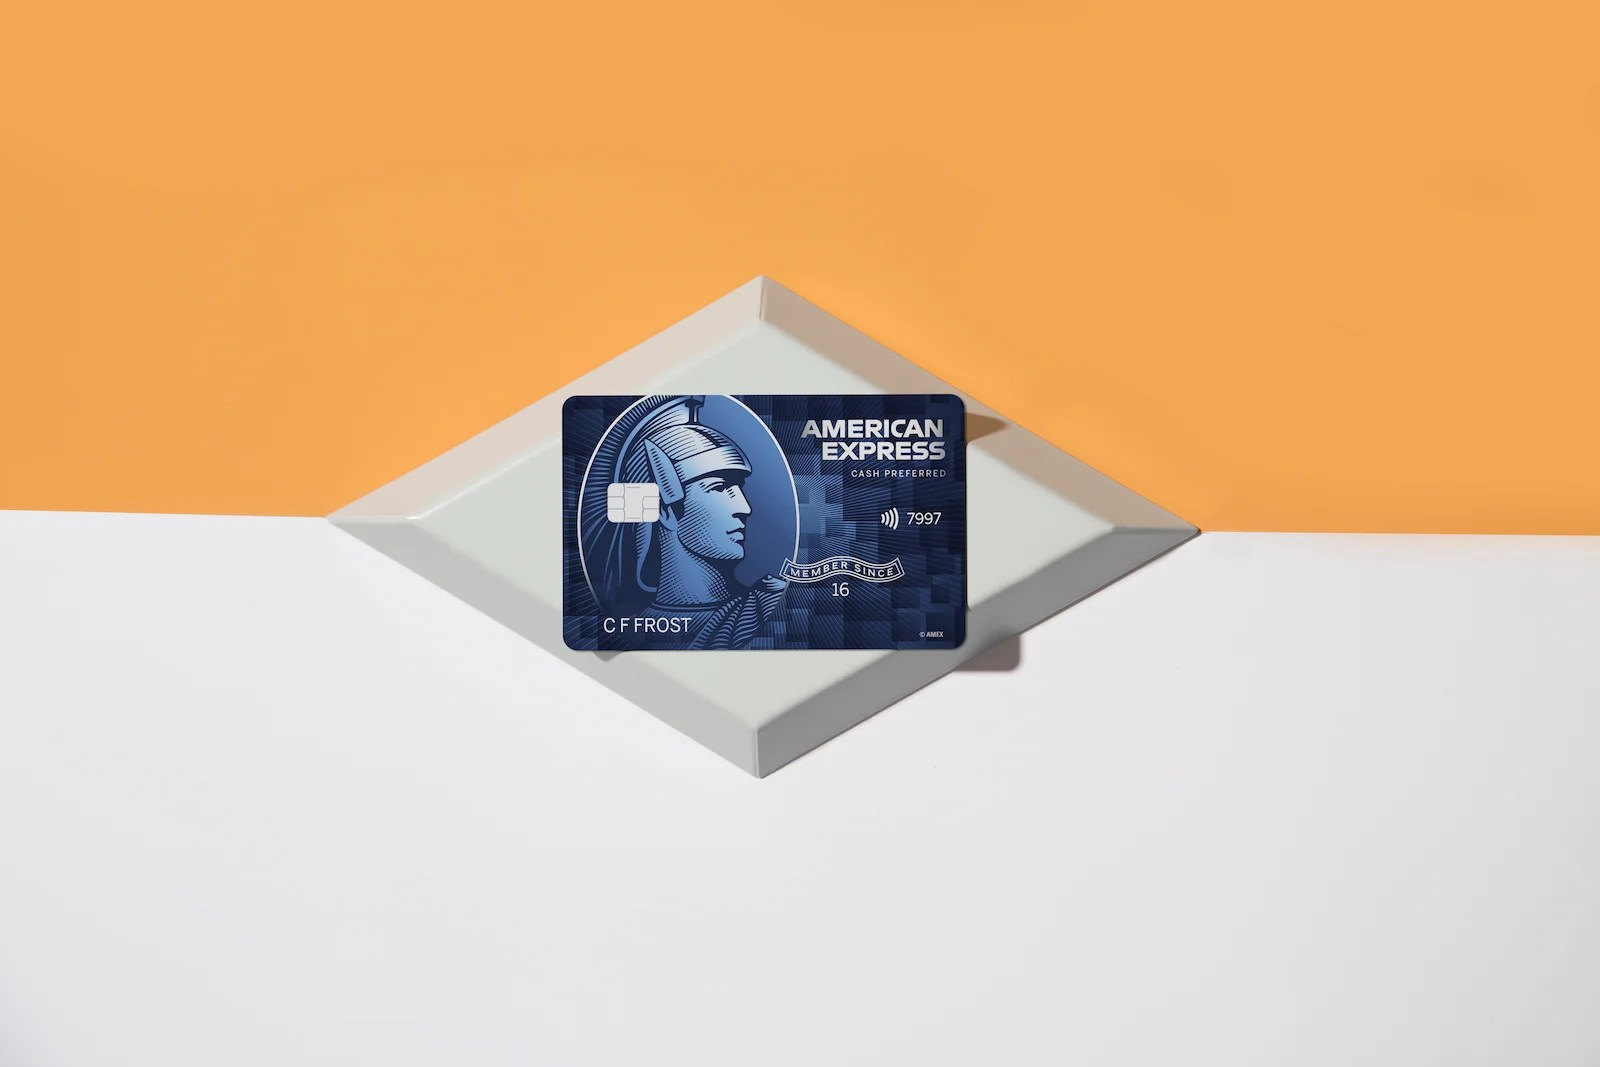 American Express Card Services >> Credit Card Review American Express Blue Cash Preferred